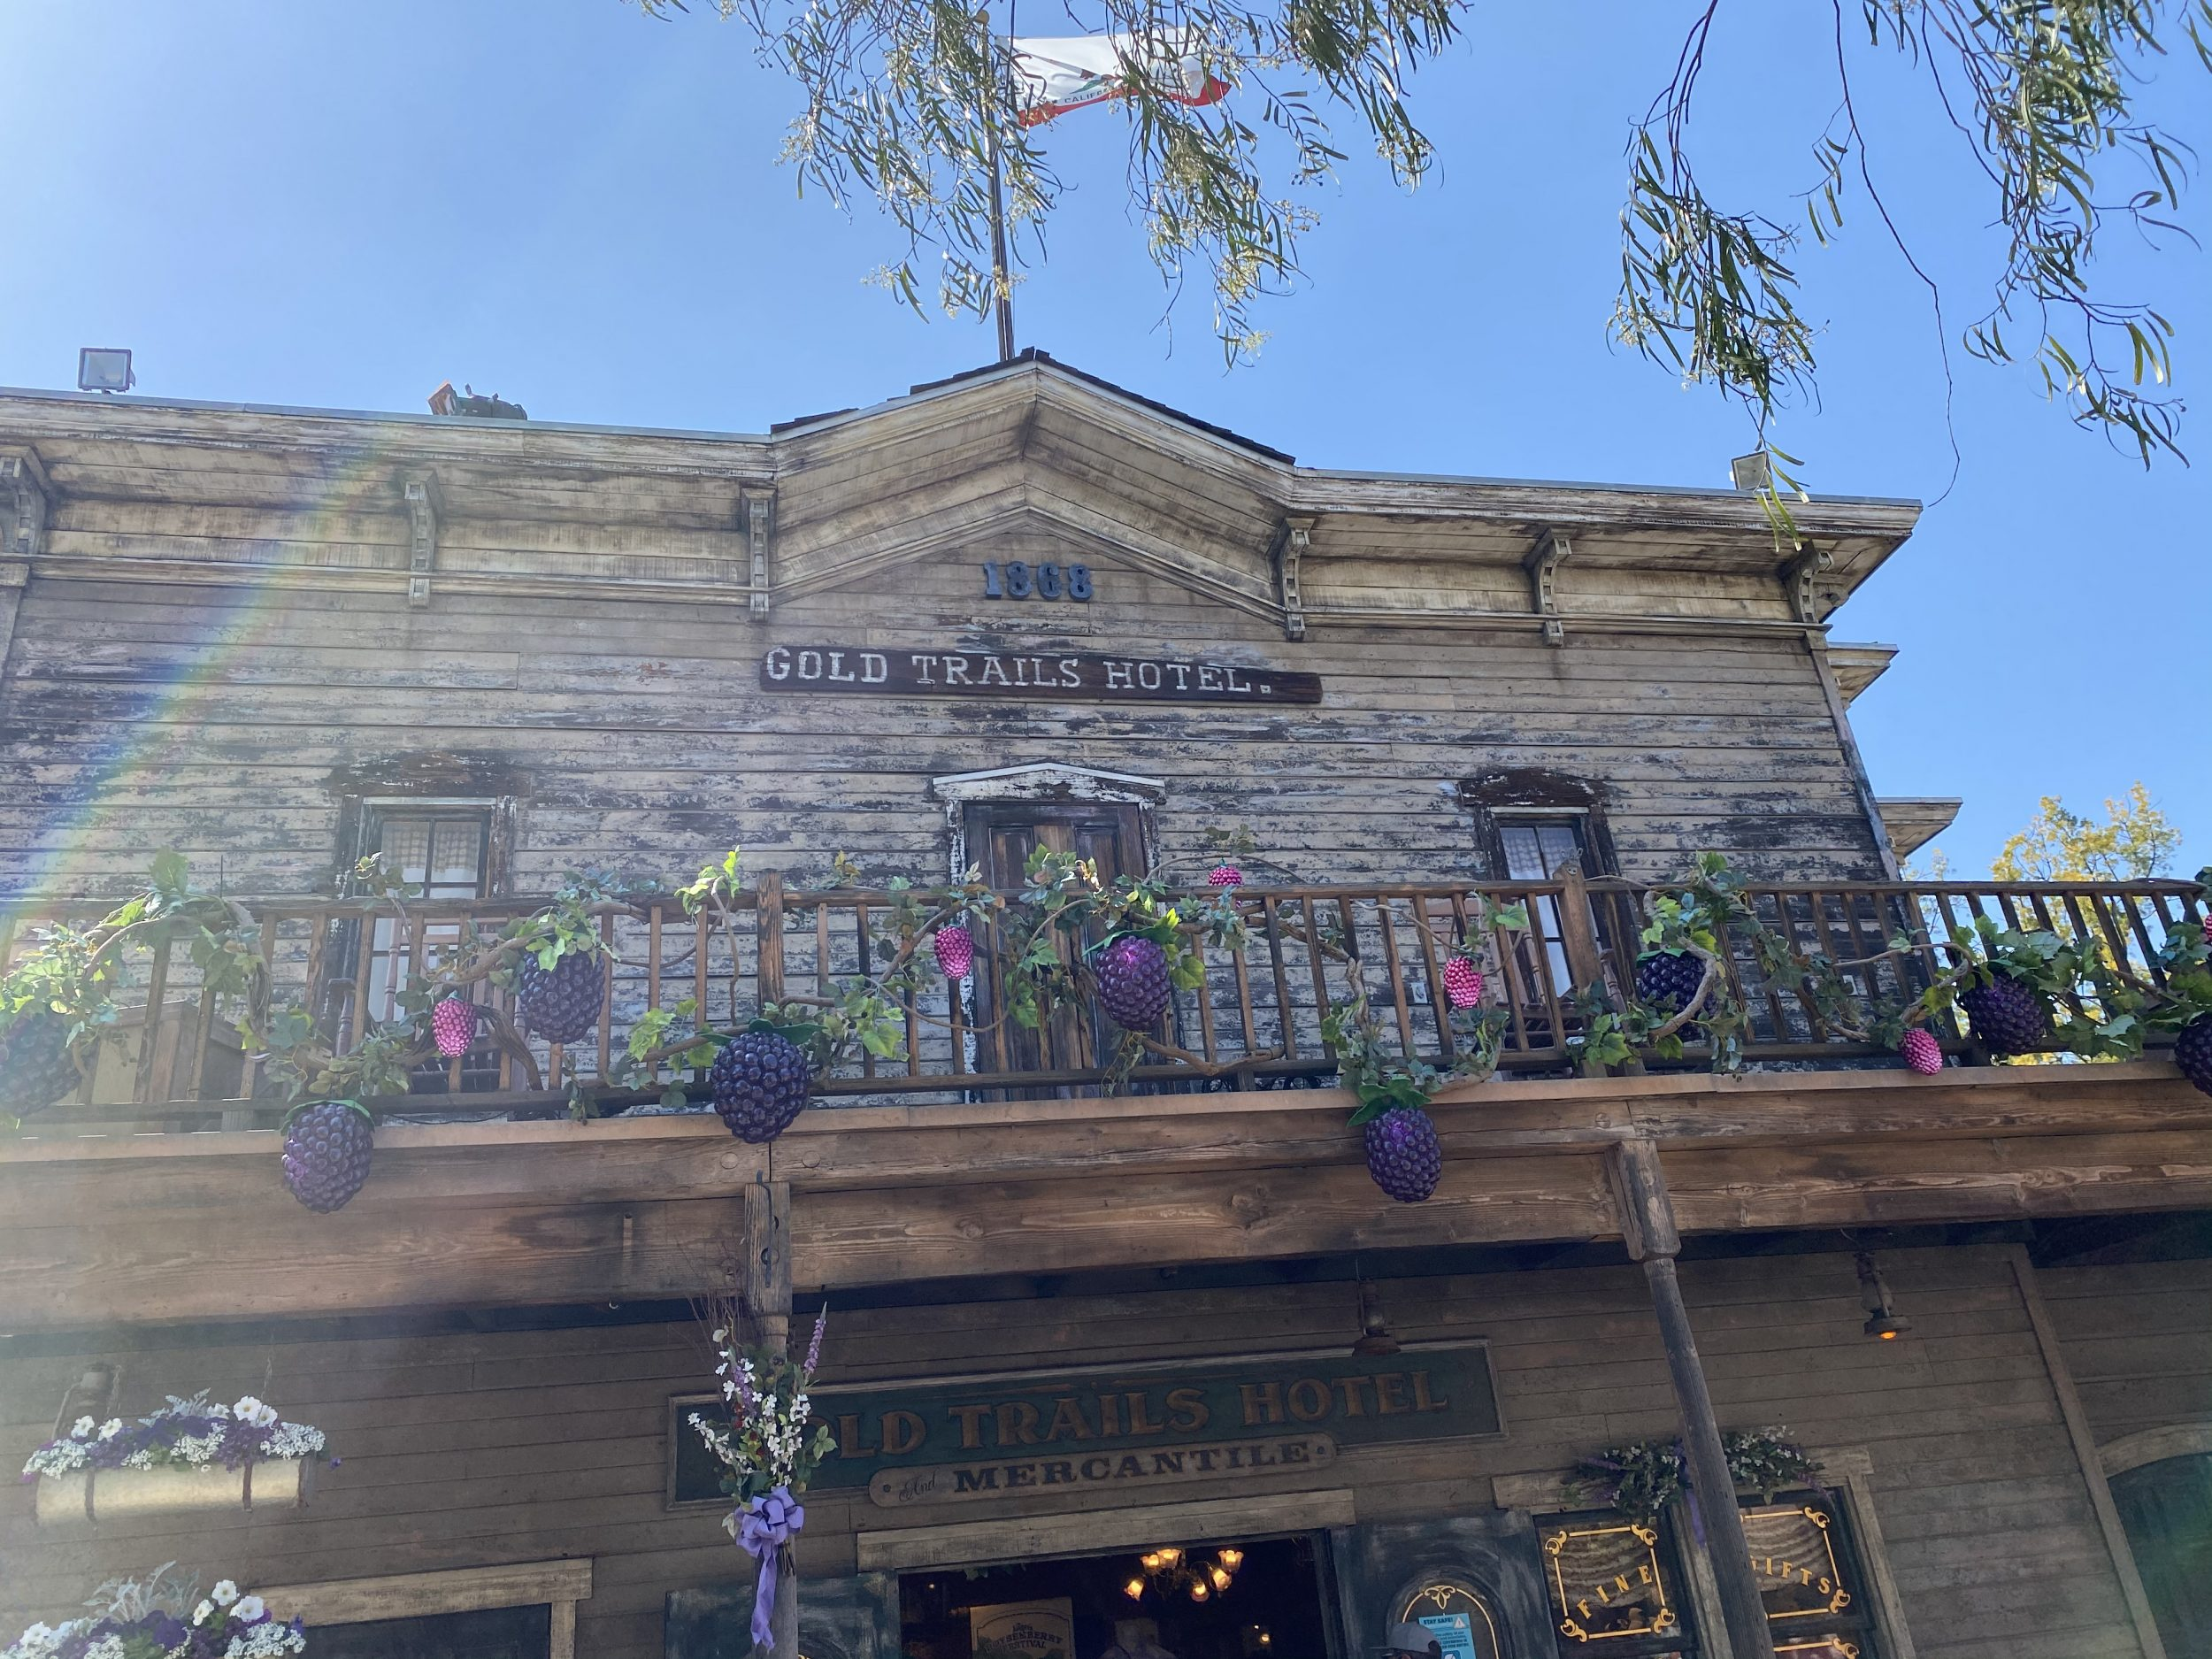 The top of the historical hotel in Ghost Town at Knott's Berry Farm has a wrap around porch and resides above the saloon